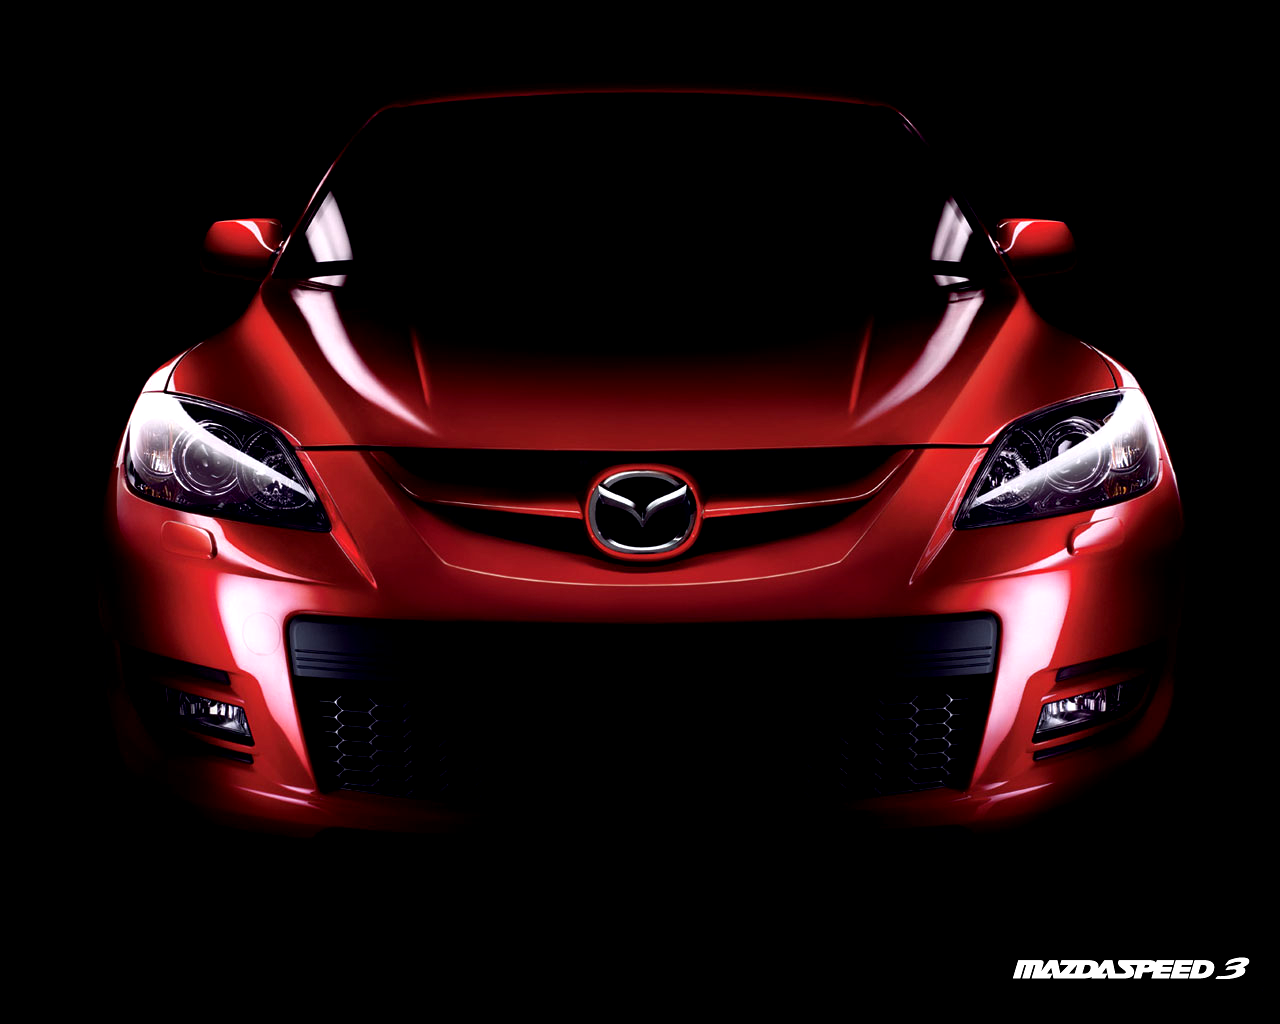 Mazda 3 HQFX Wallpaper Desktop